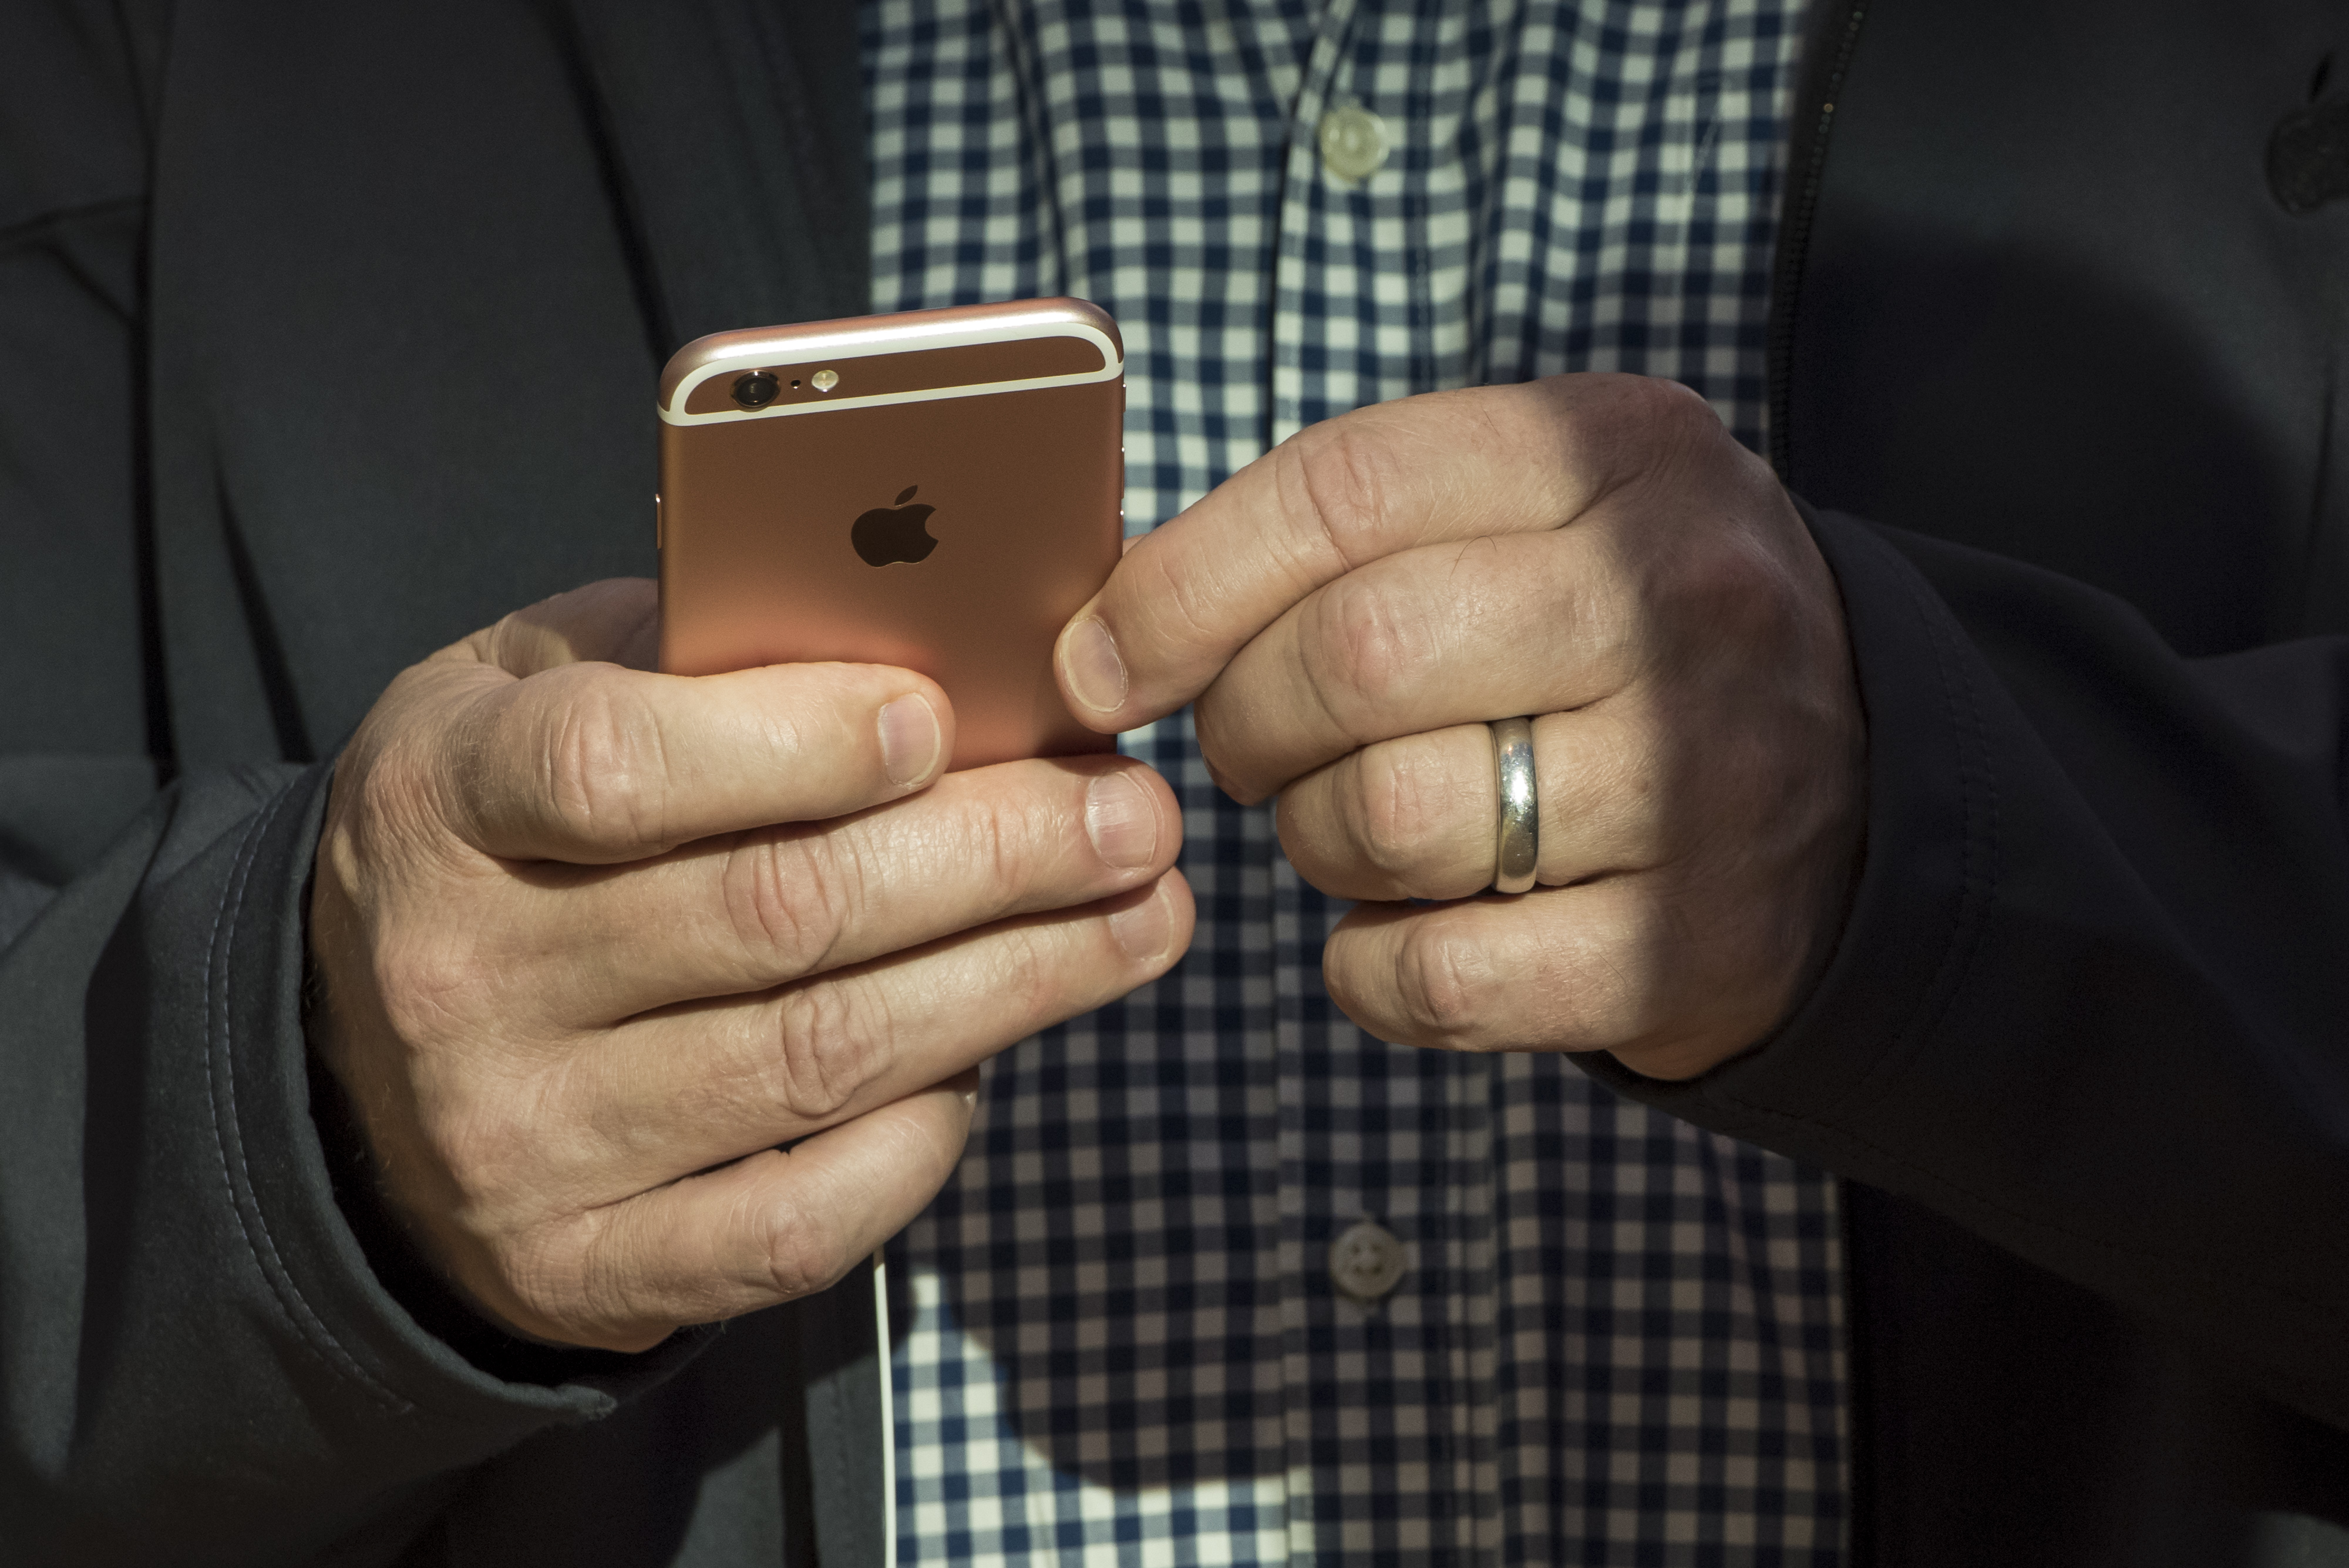 A customer looks at a Apple Inc. iPhone 6s at an Apple store in Palo Alto, California, U.S., on Friday, Sept. 25, 2015.